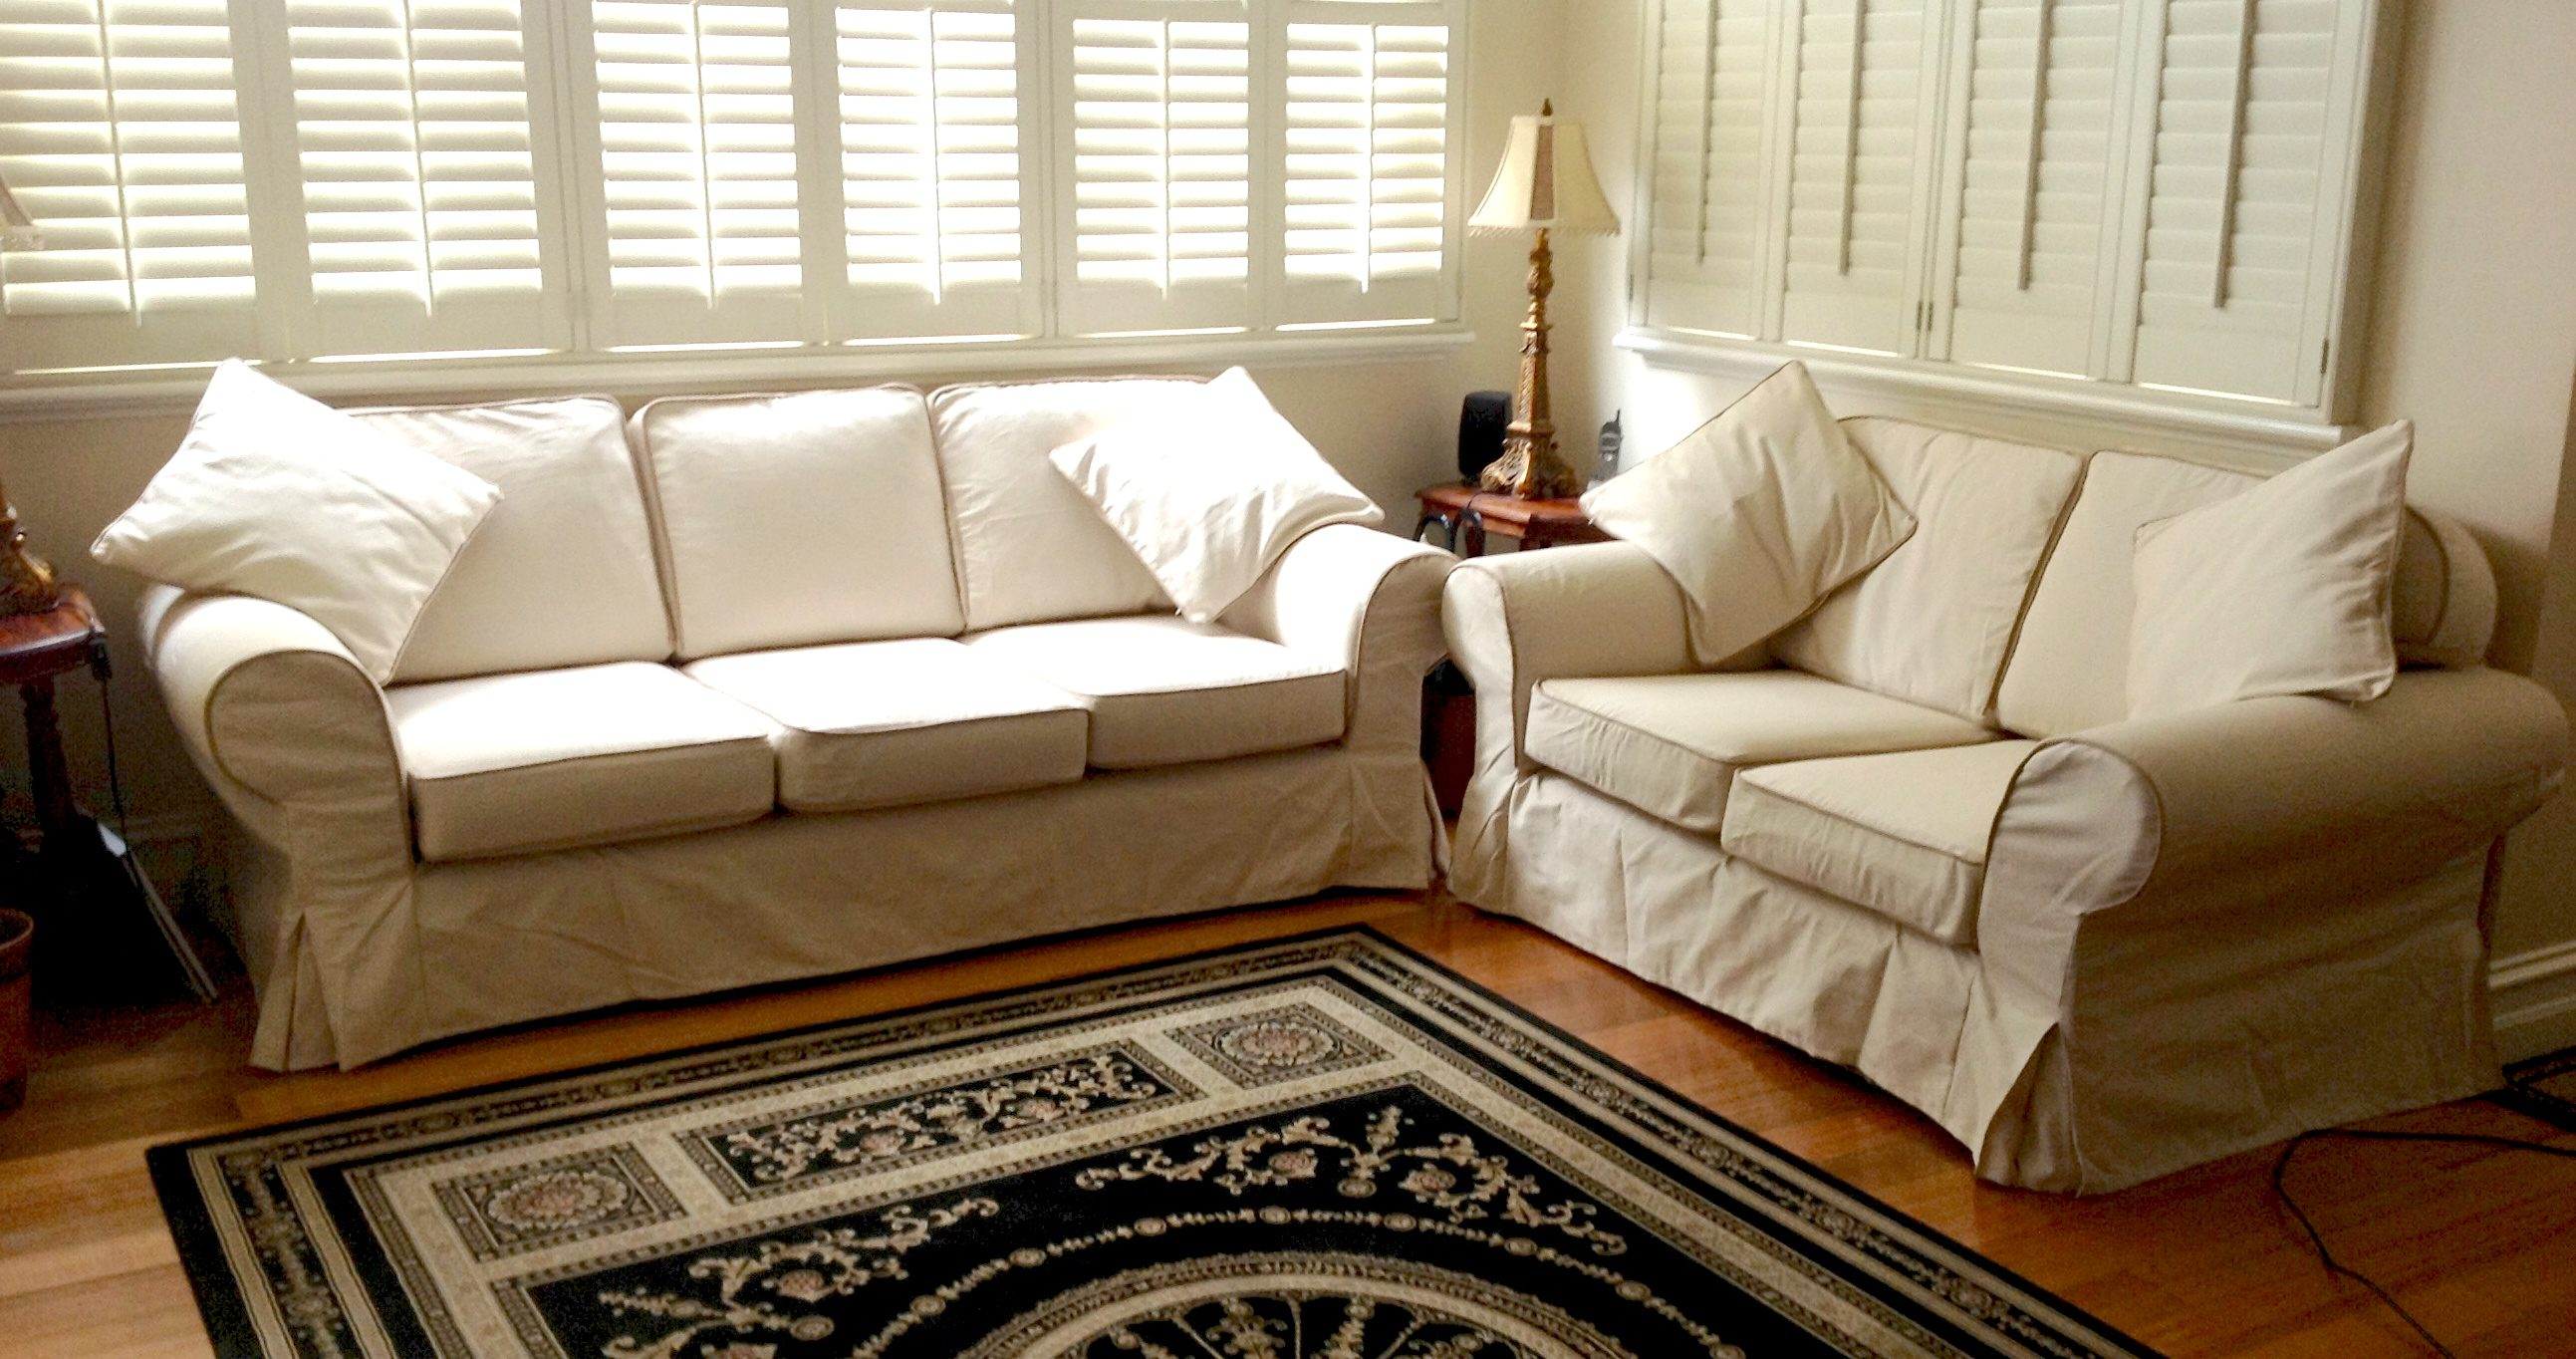 Custom Slipcovers and Couch cover for any Sofa line